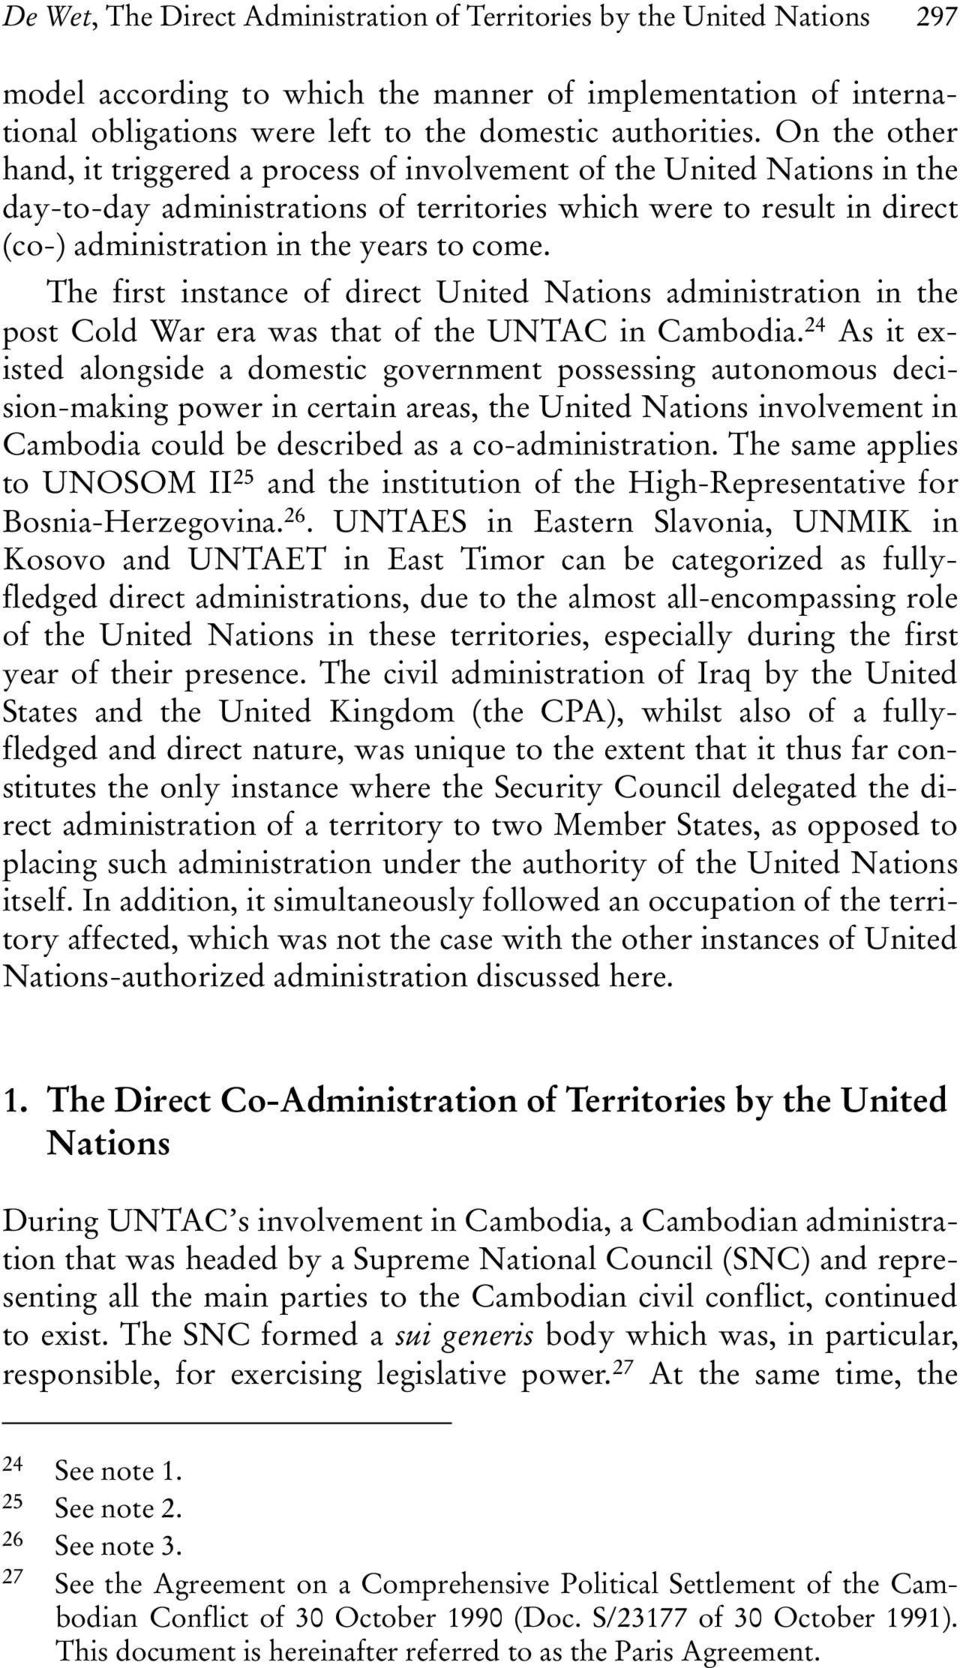 come. The first instance of direct United Nations administration in the post Cold War era was that of the UNTAC in Cambodia.